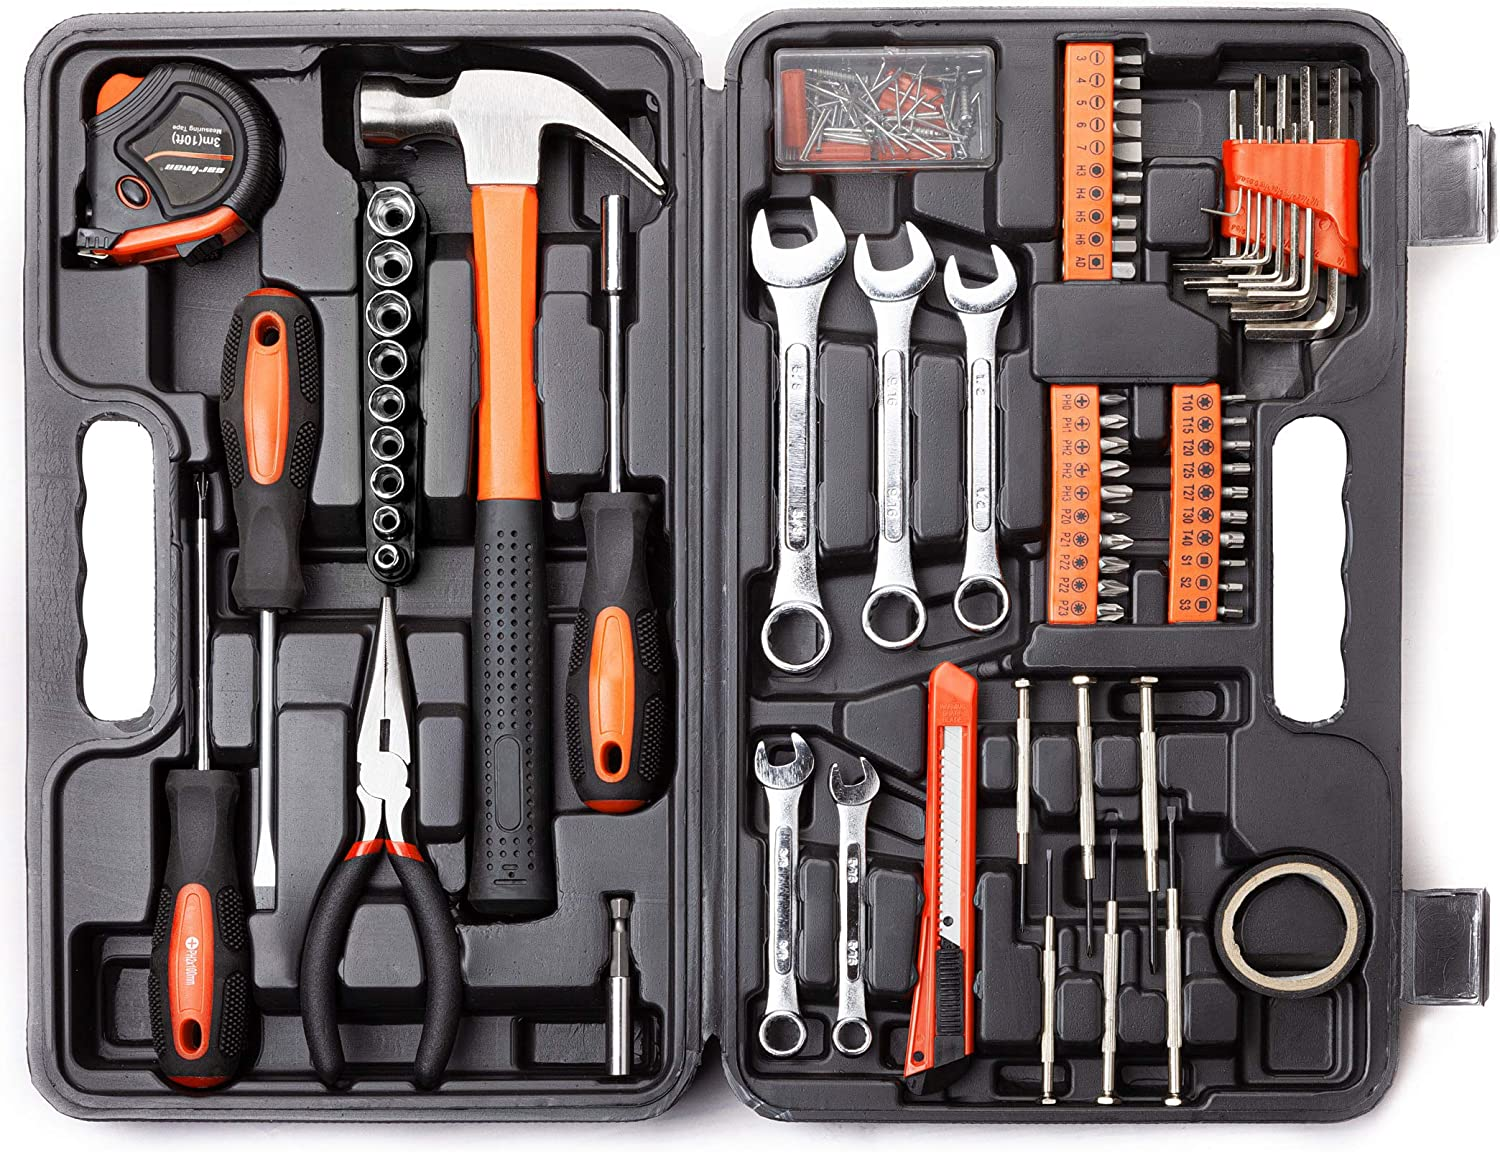 CARTMAN 148-Piece Tool Set - General Household Hand Tool Kit with Plastic Toolbox Storage Case,Orange